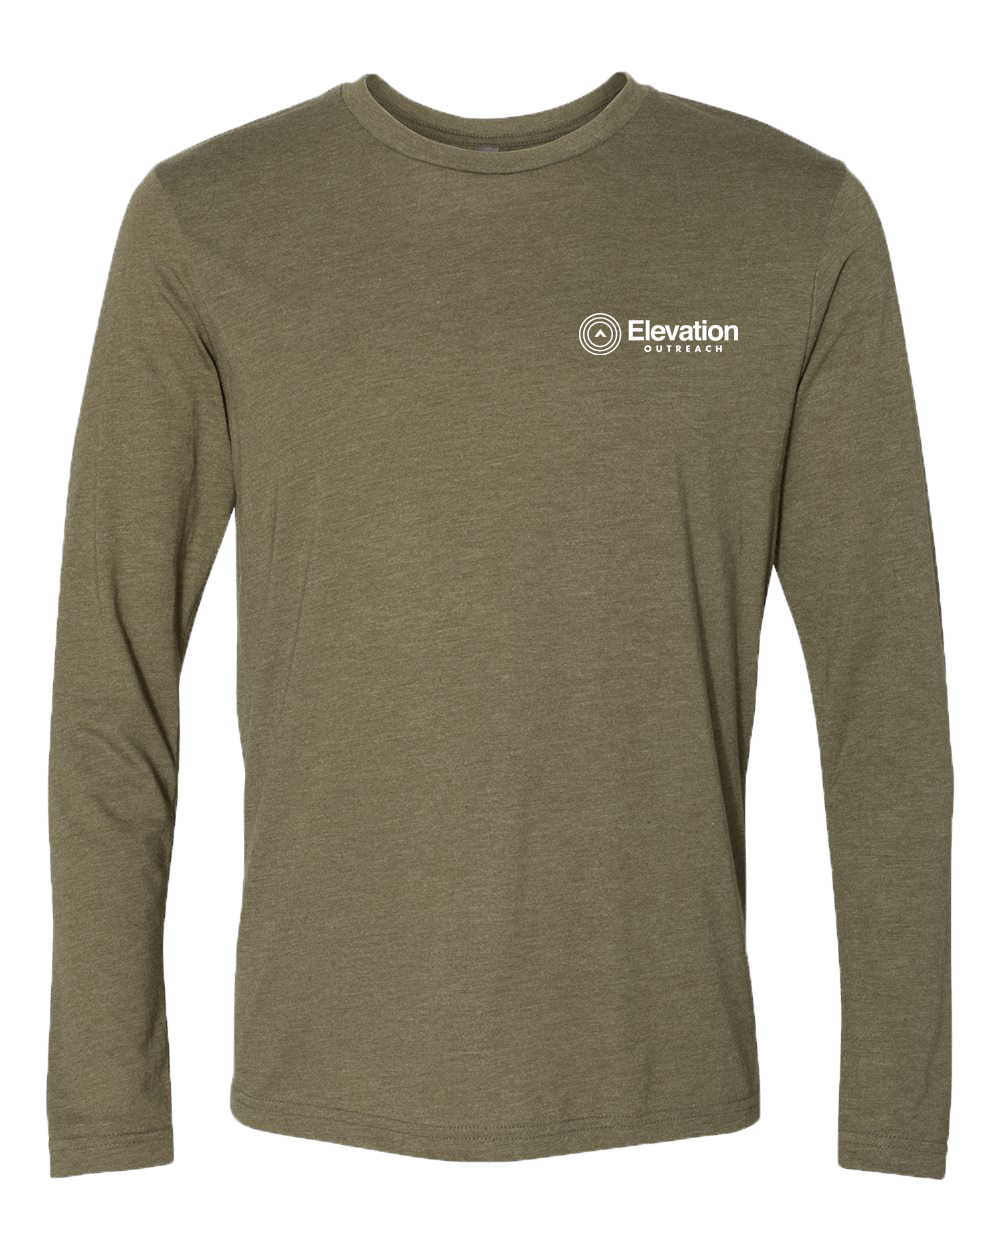 Outreach Long Sleeve Tee